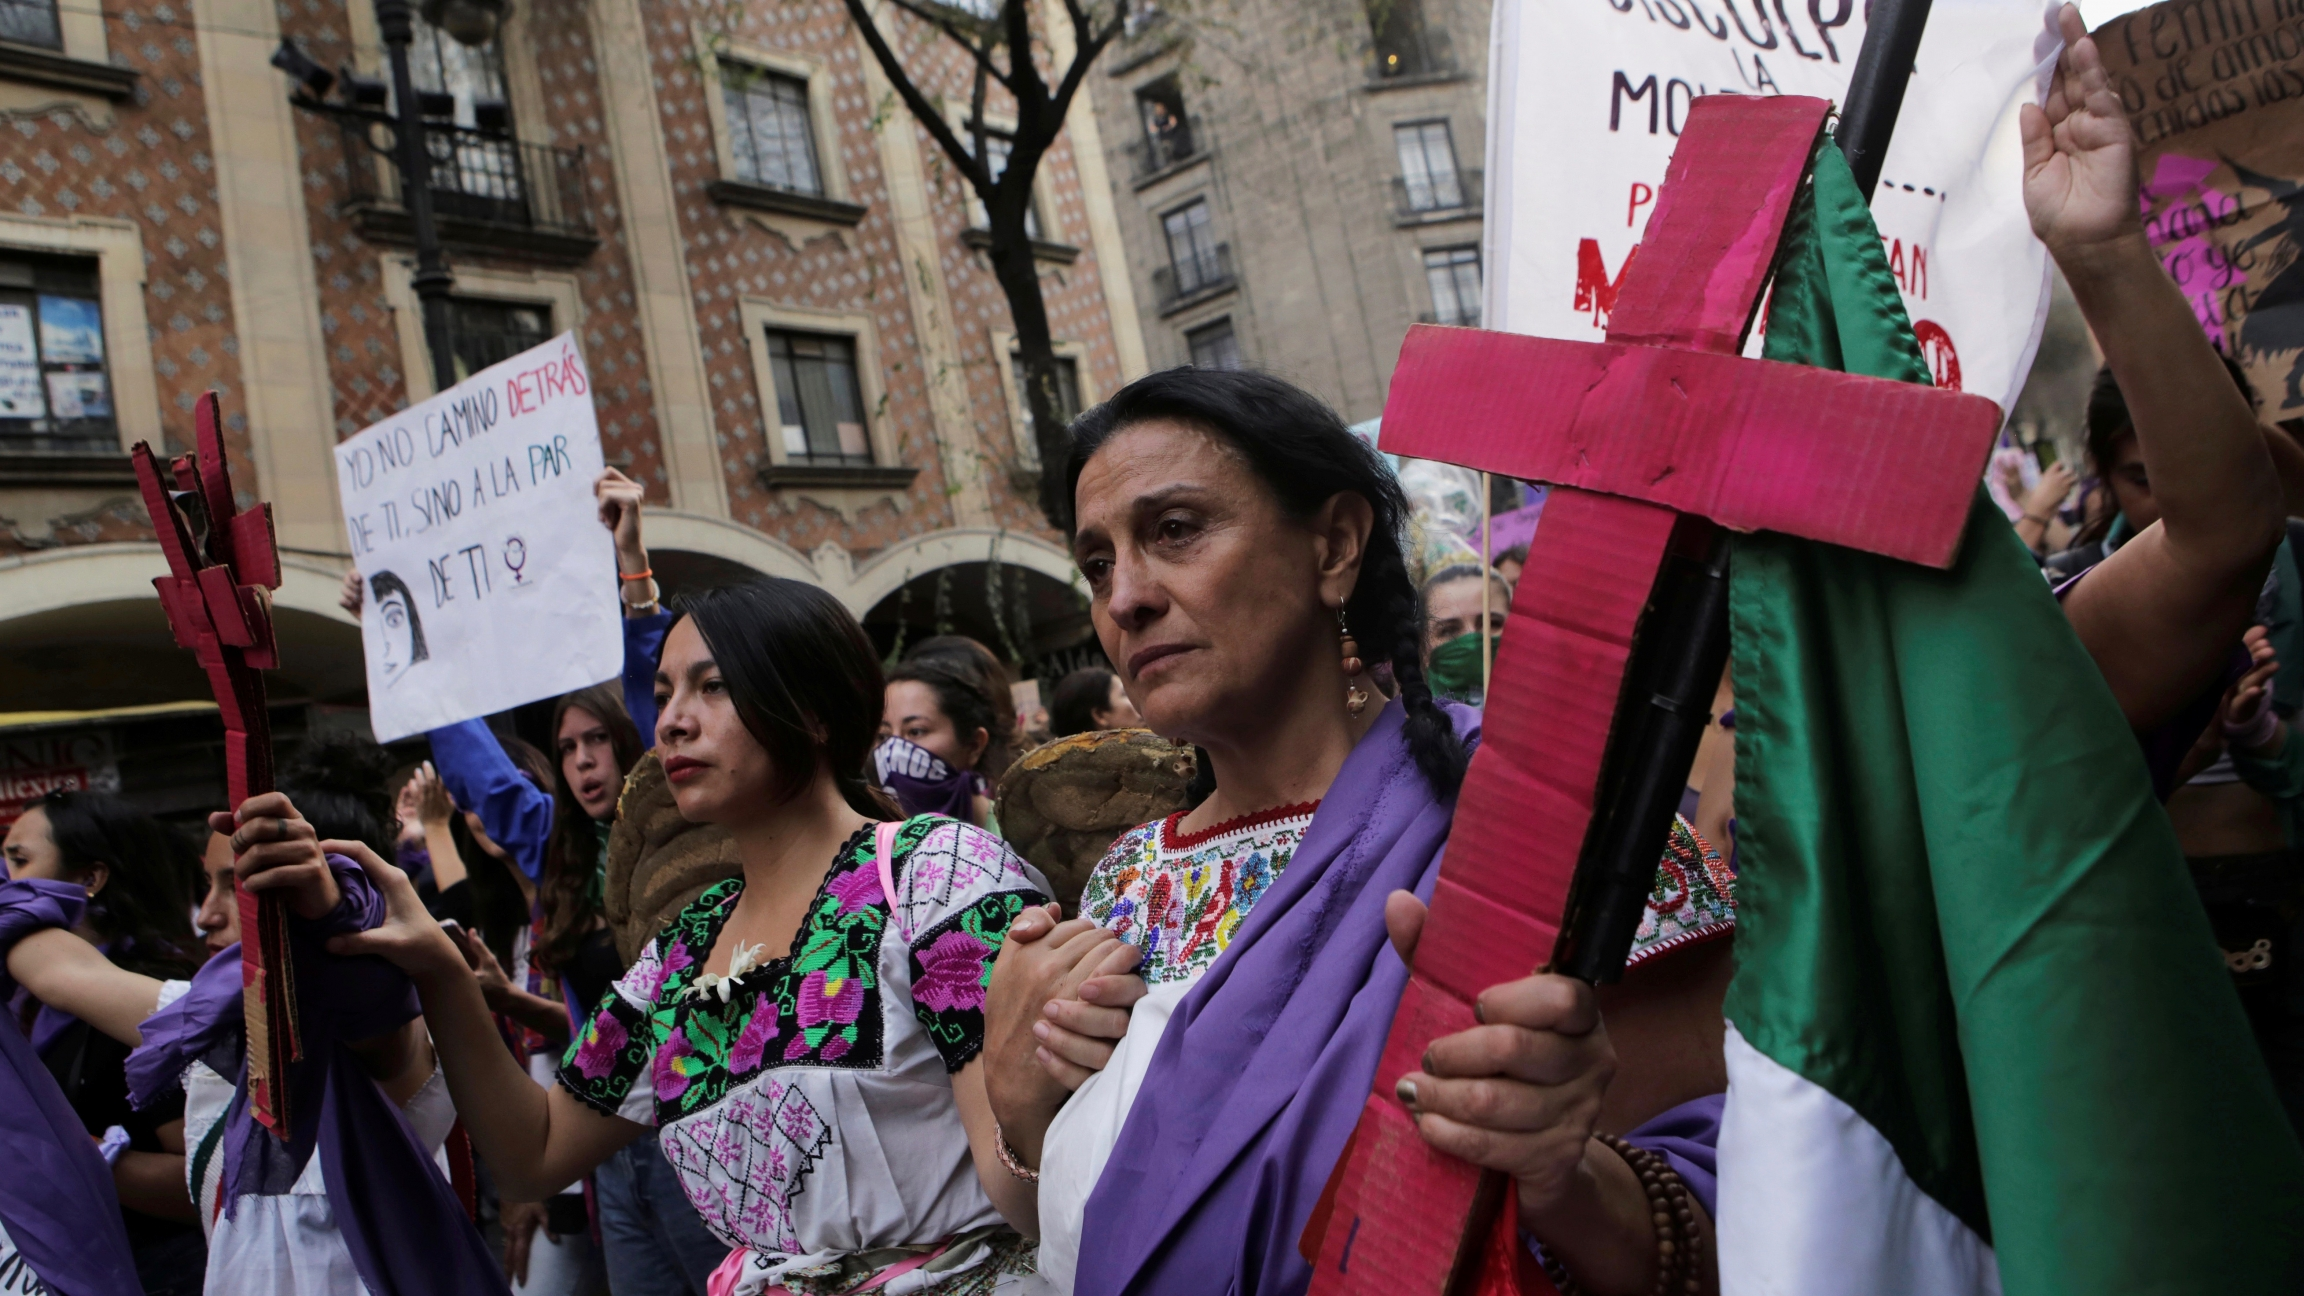 Women in Mexico take to the streets to protest femicide | The World from PRX